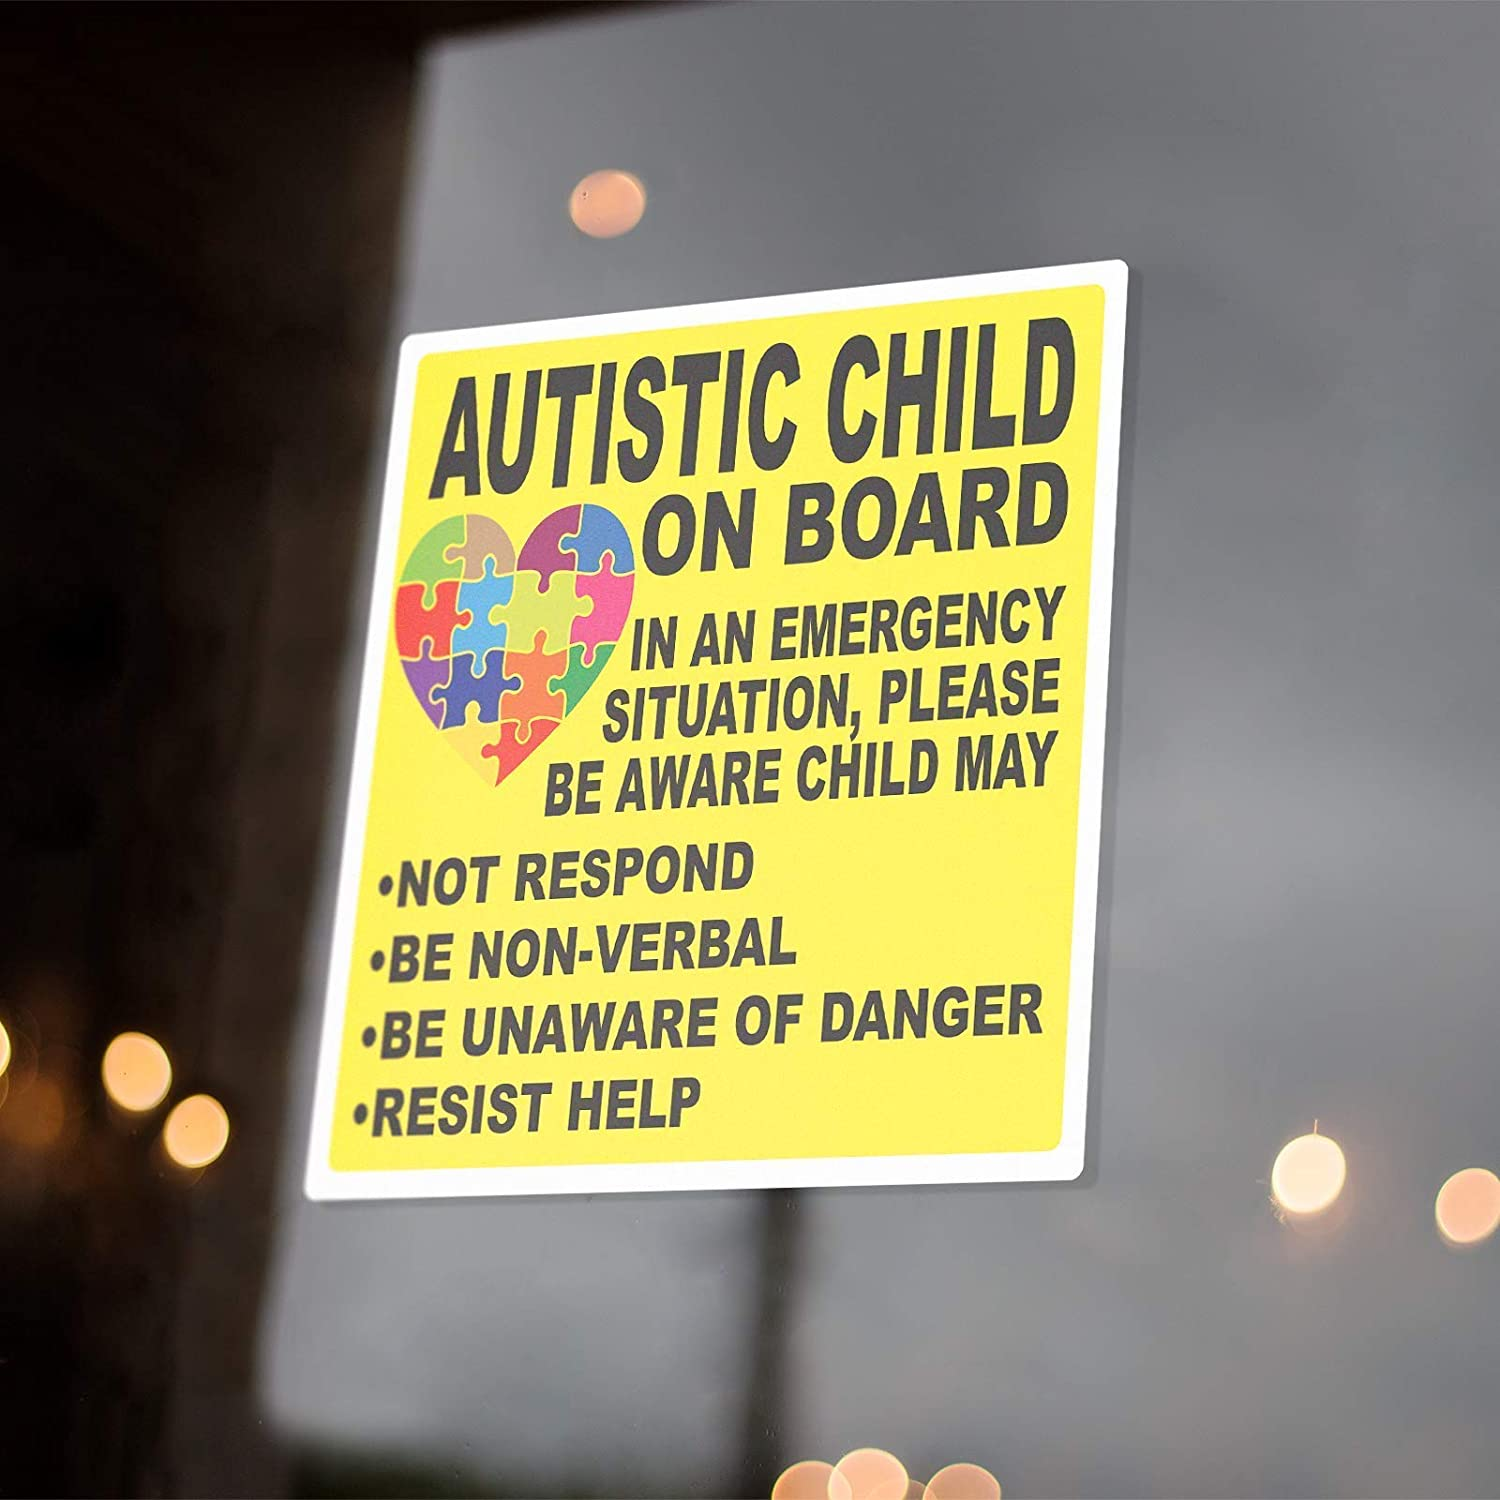 Child With Autism On Board Sticker Decals